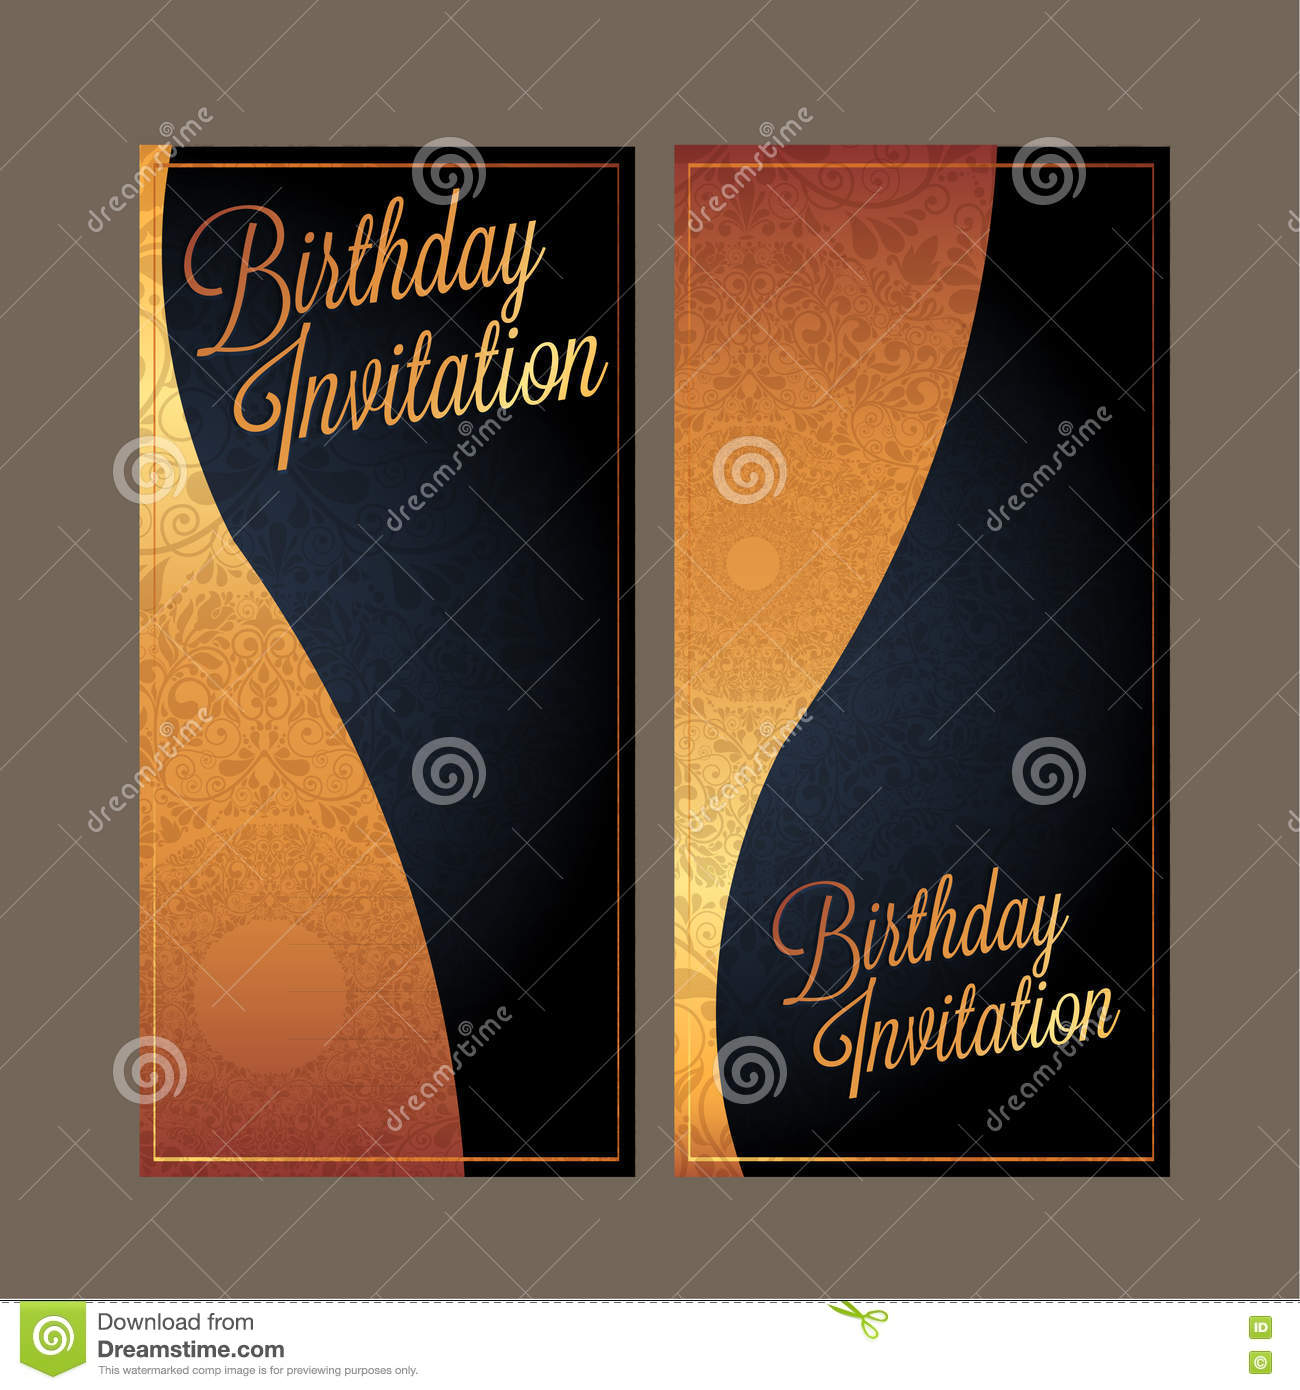 The Birthday Card With Black Color Background Design Stock Vector